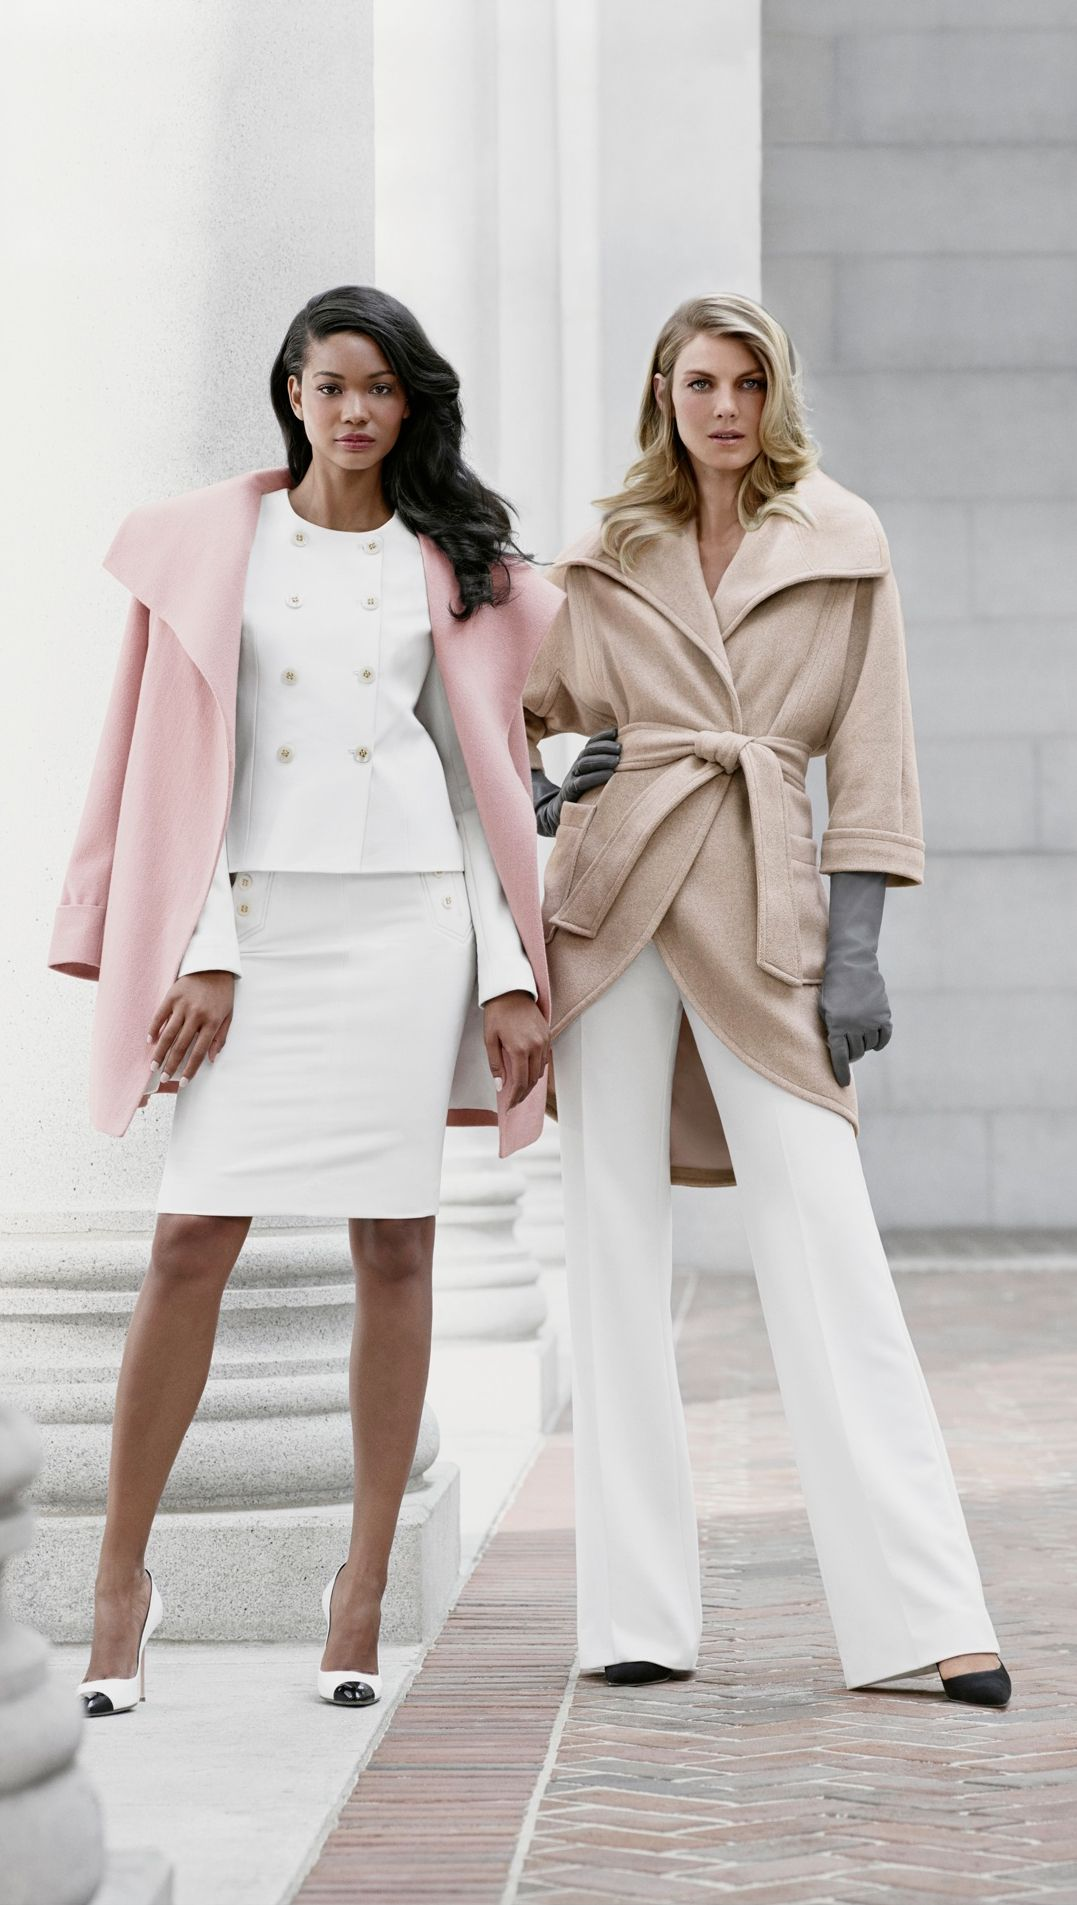 d4b6273b coats from the limited scandal collection   outfits   Fashion ...